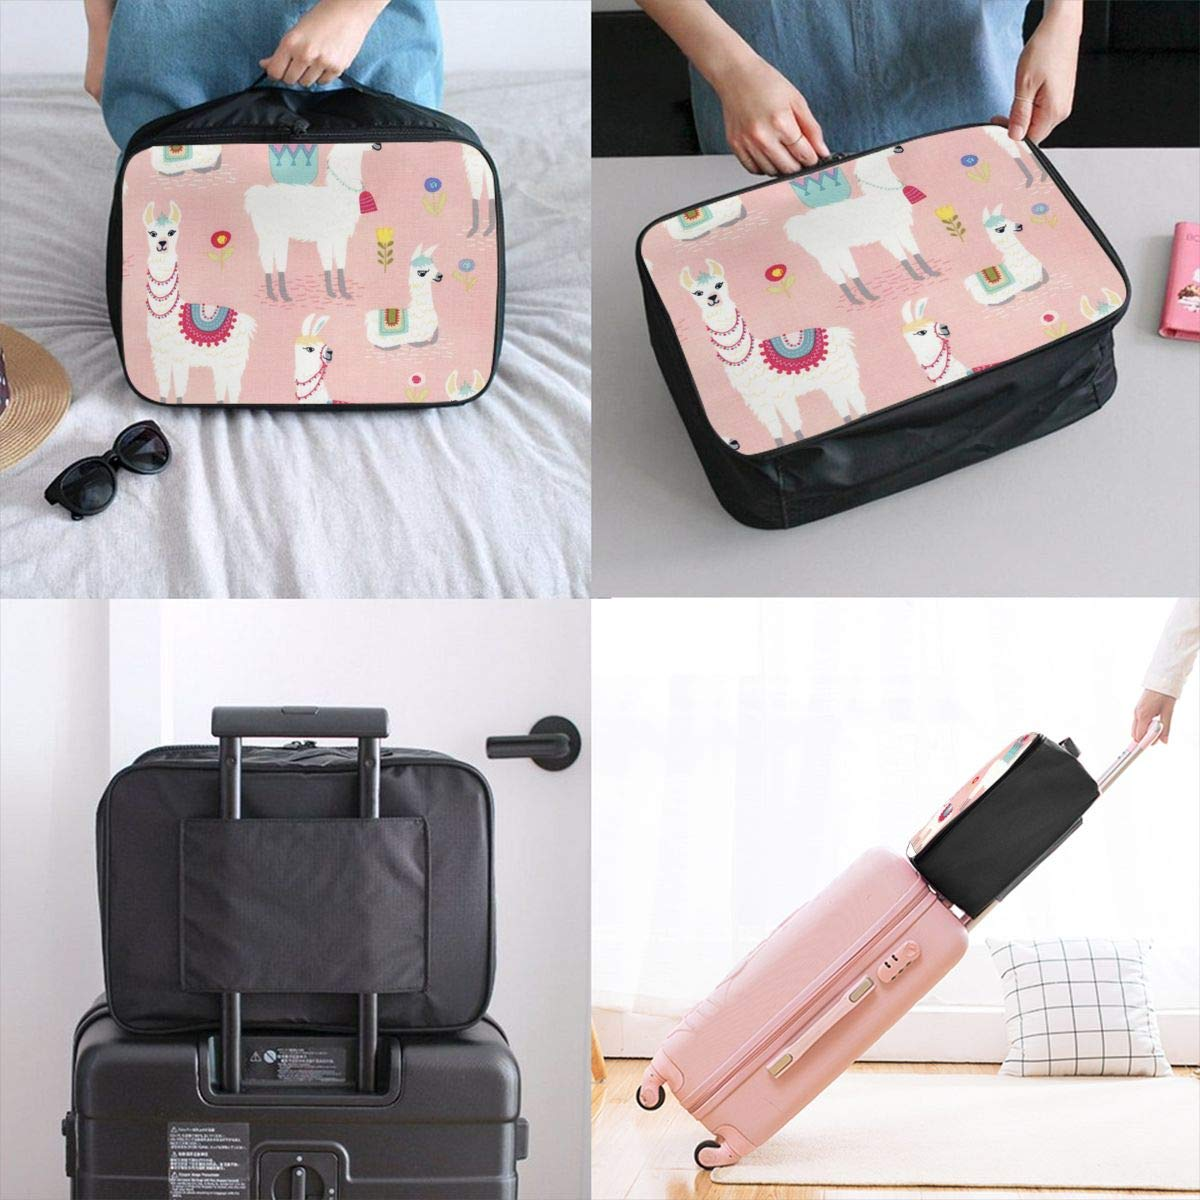 Cartoon Floral Llama In Pink Travel Lightweight Waterproof Foldable Storage Portable Luggage Duffle Tote Bag Large Capacity In Trolley Handle Bags 6x11x15 Inch